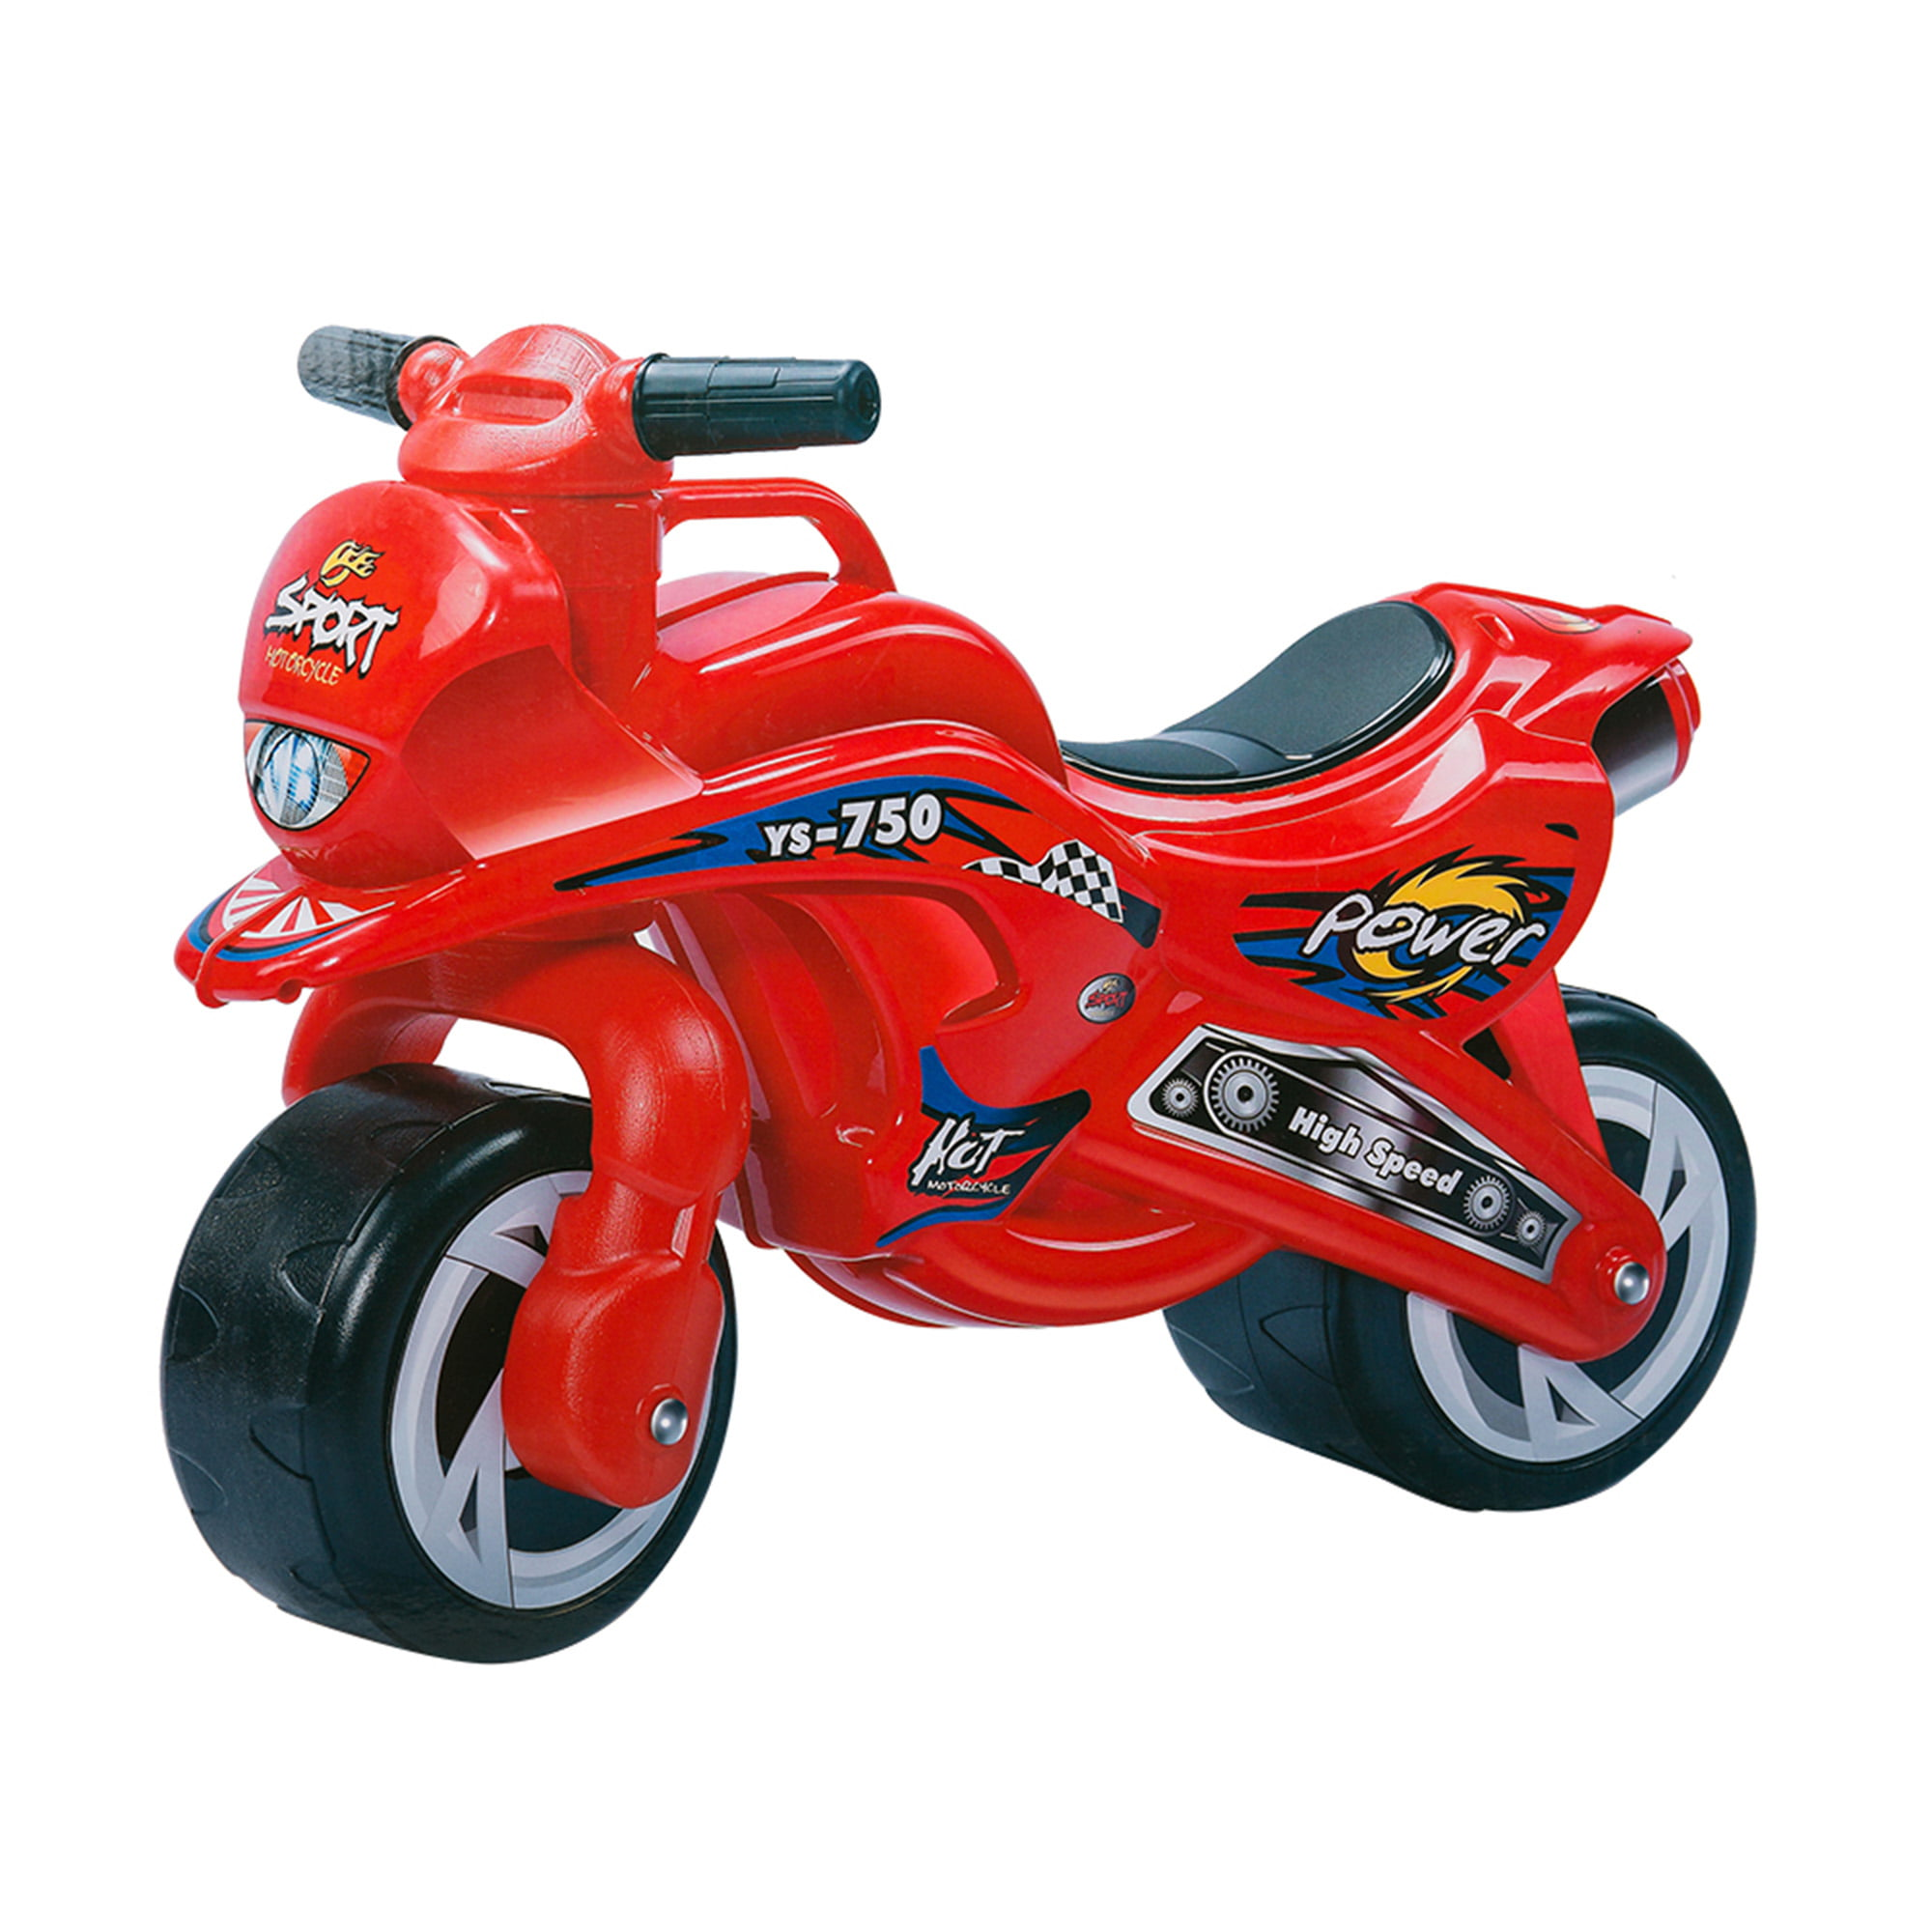 KARMAS PRODUCT Kids Ride On Motorcycle Model Car Toy Red by KARMAS PRODUCT